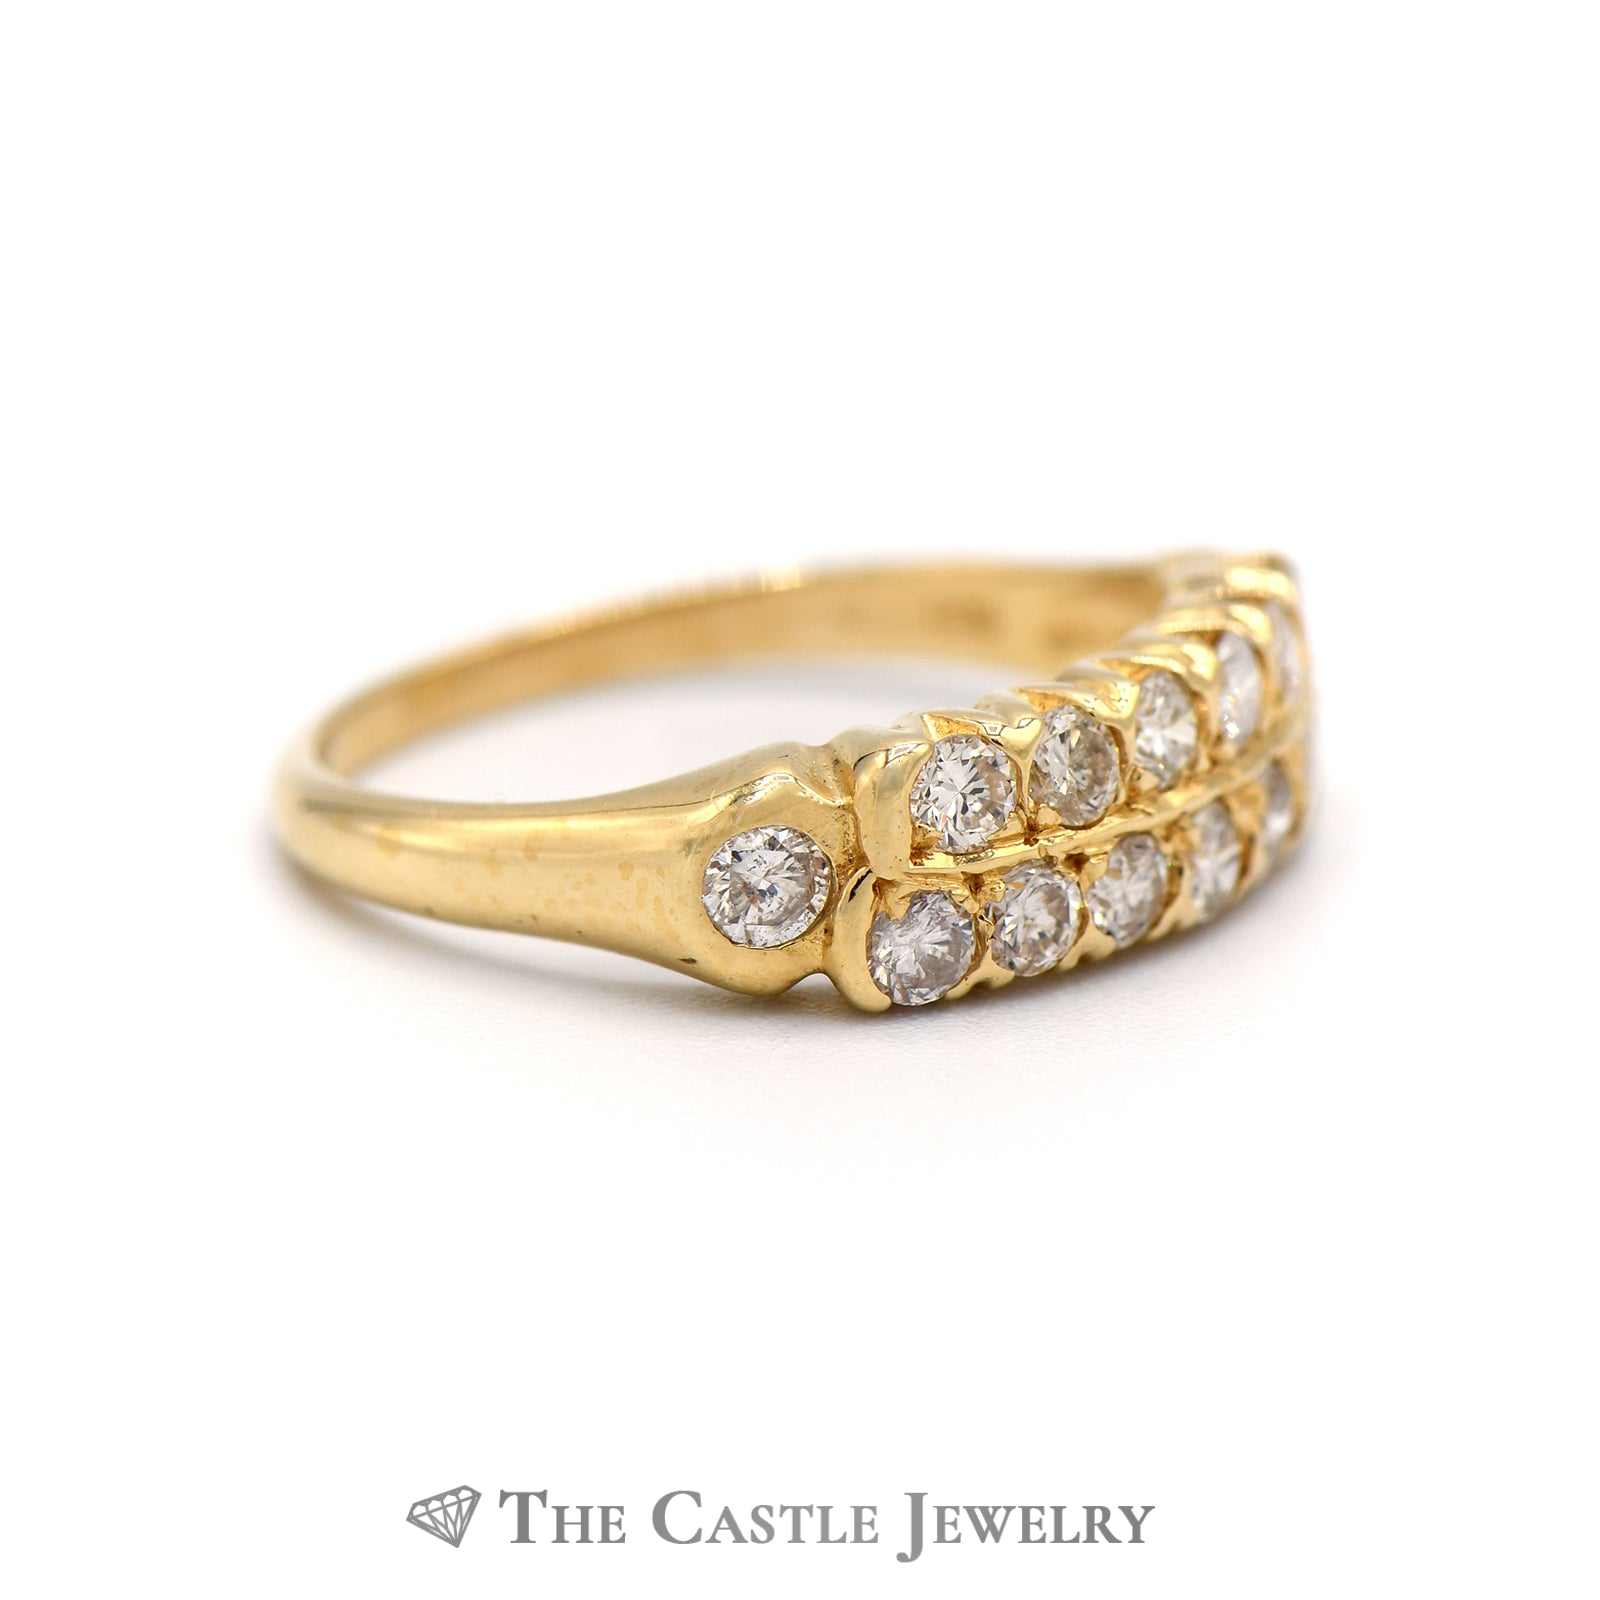 Double Row Round Diamond Ring with Single Diamond Accents on Side in 14K Gold-2